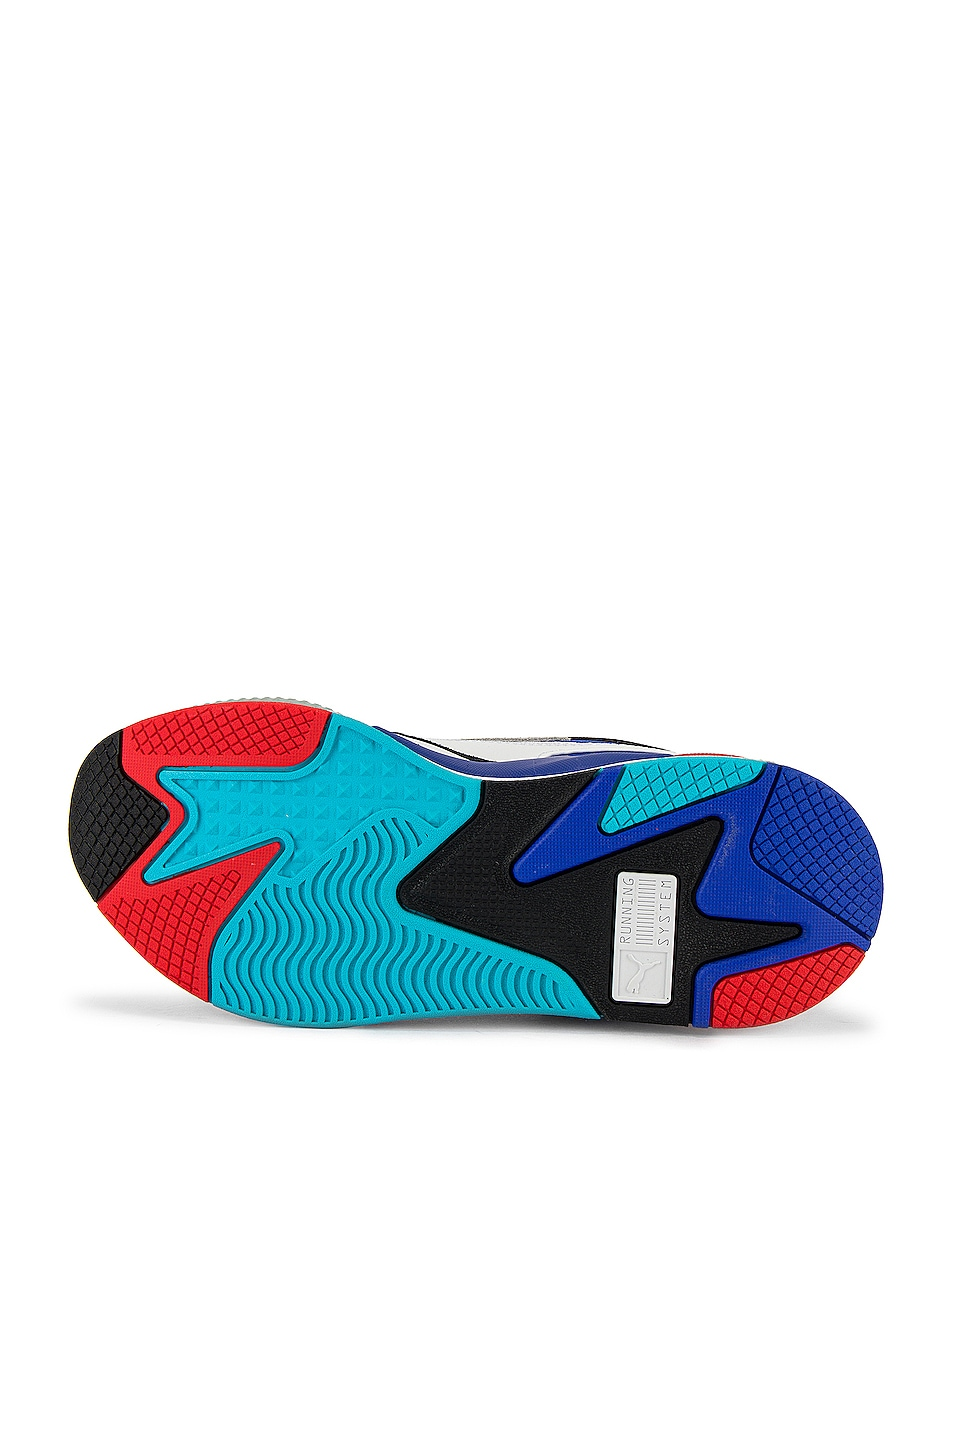 Image 6 of Puma Select RSX Cube RS-X3 Puzzle in Puma White & Dazzling Blue